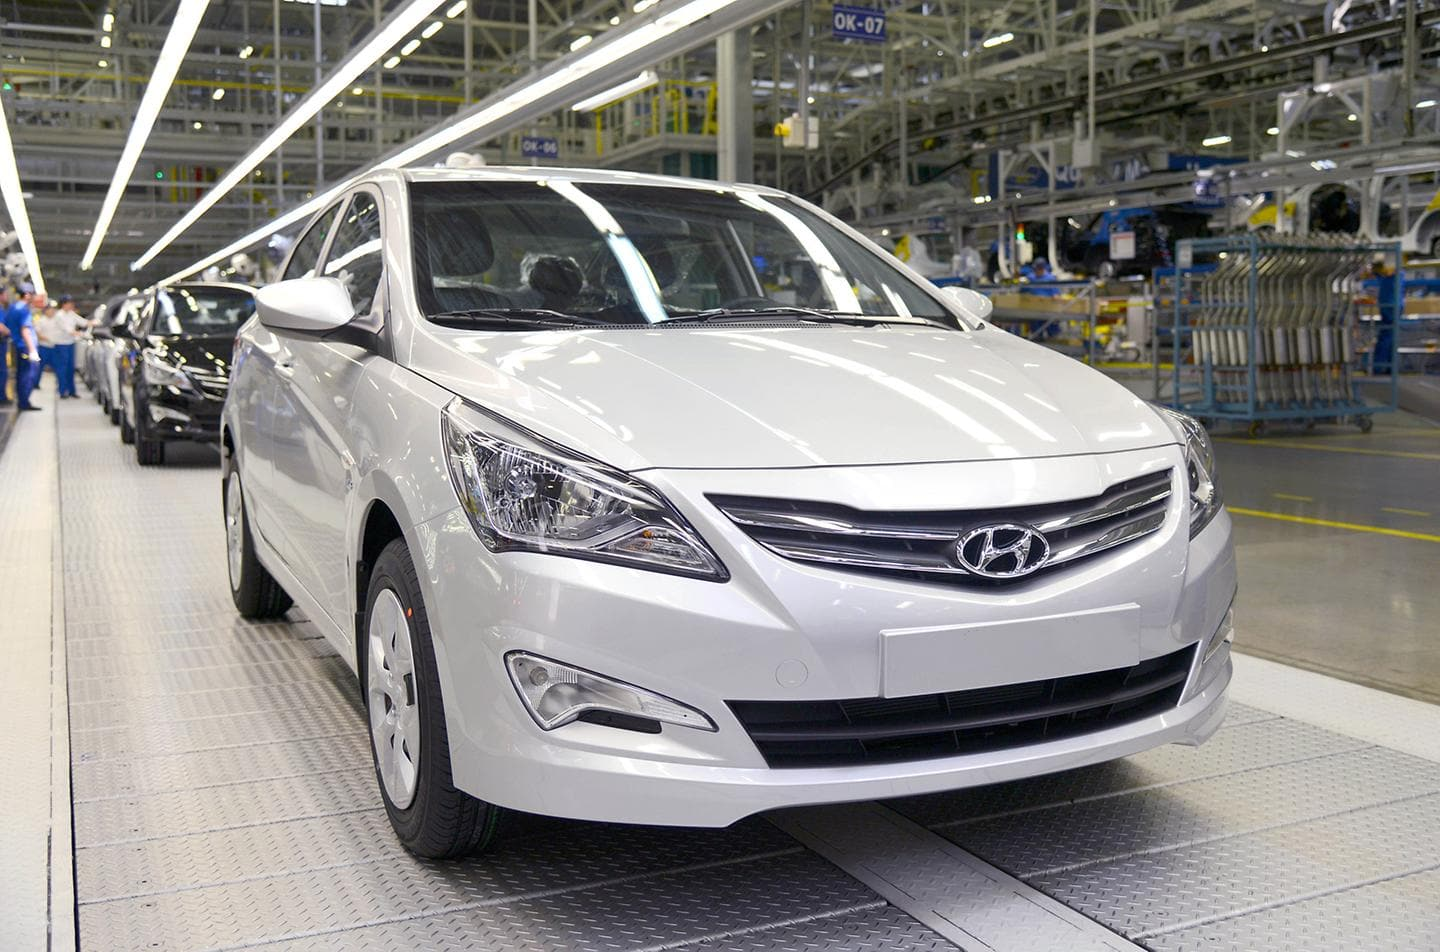 Hyundai Motor Manufactures One Millionth Car at Its Plant in Russia (2)